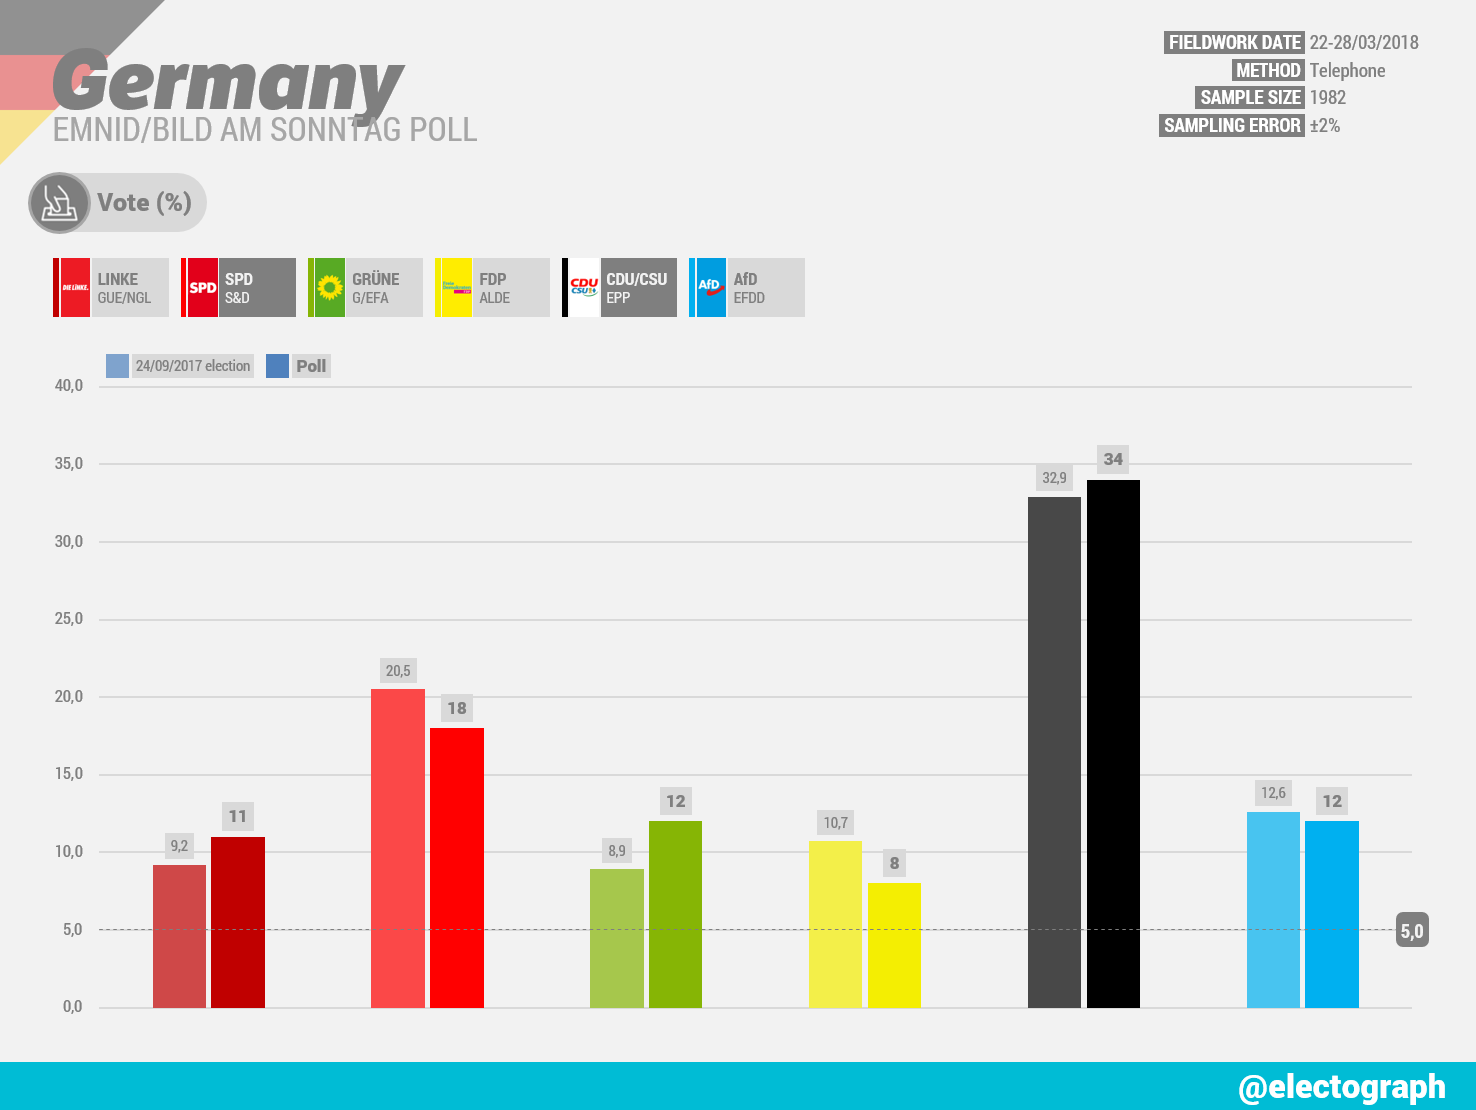 GERMANY Emnid poll chart for Bild am Sonntag, March 2018